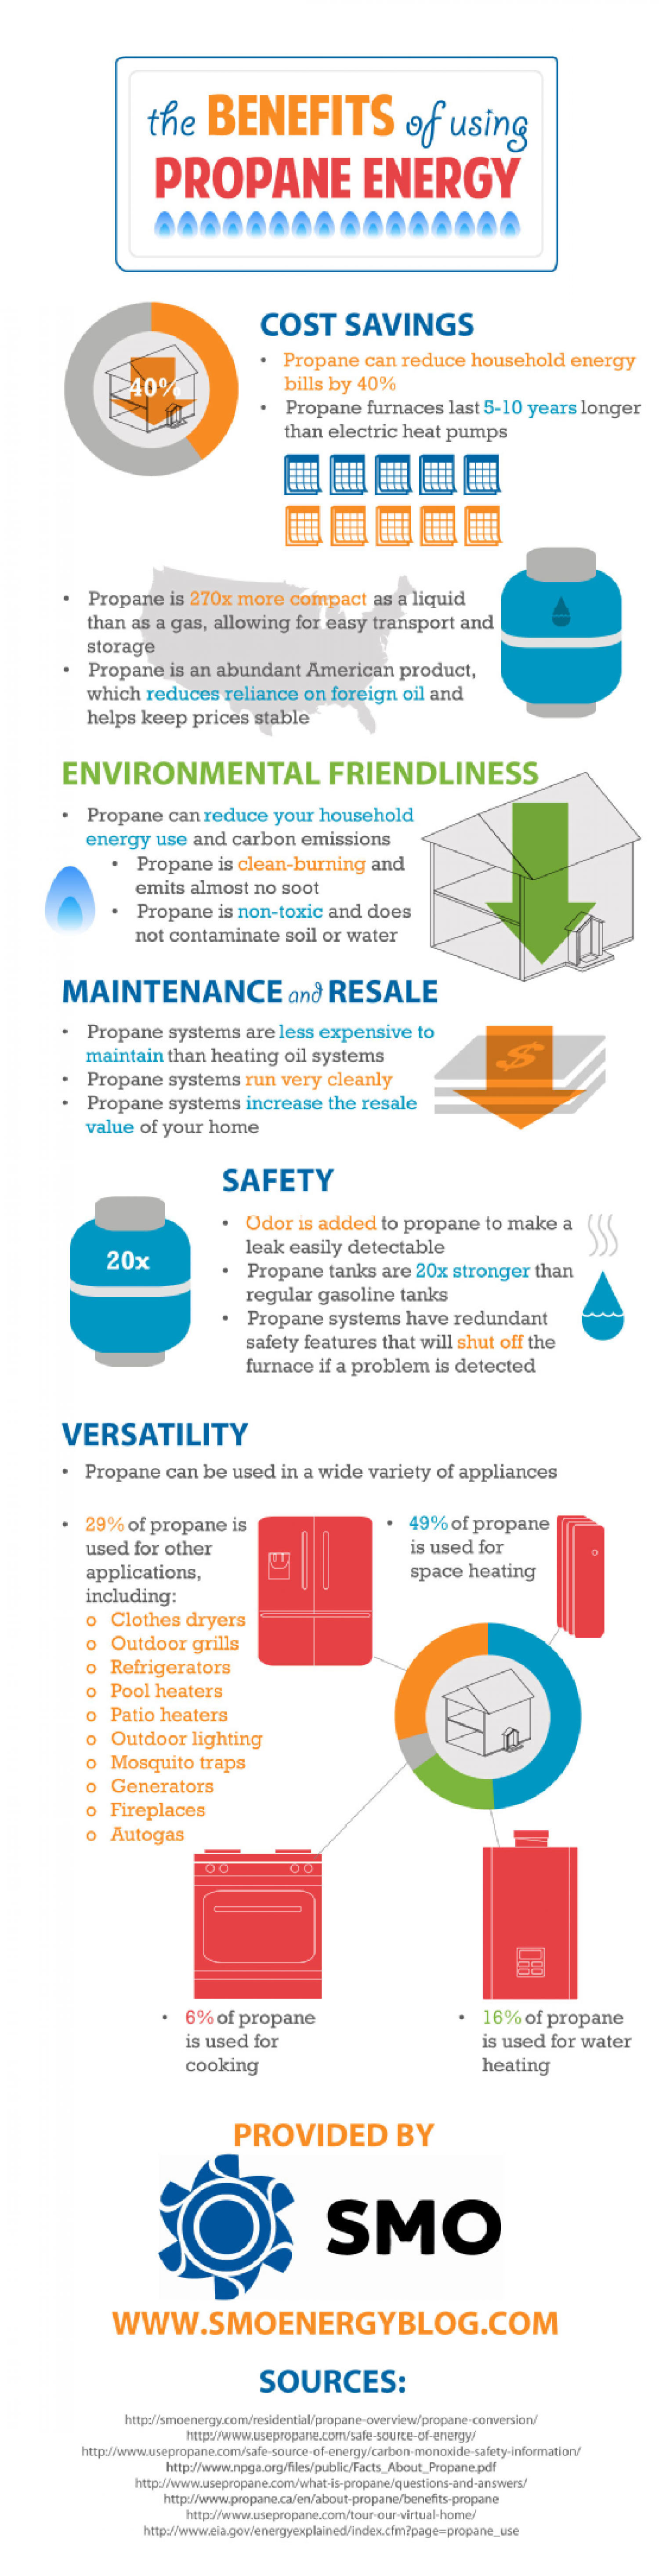 The Benefits of Using Propane Energy Infographic